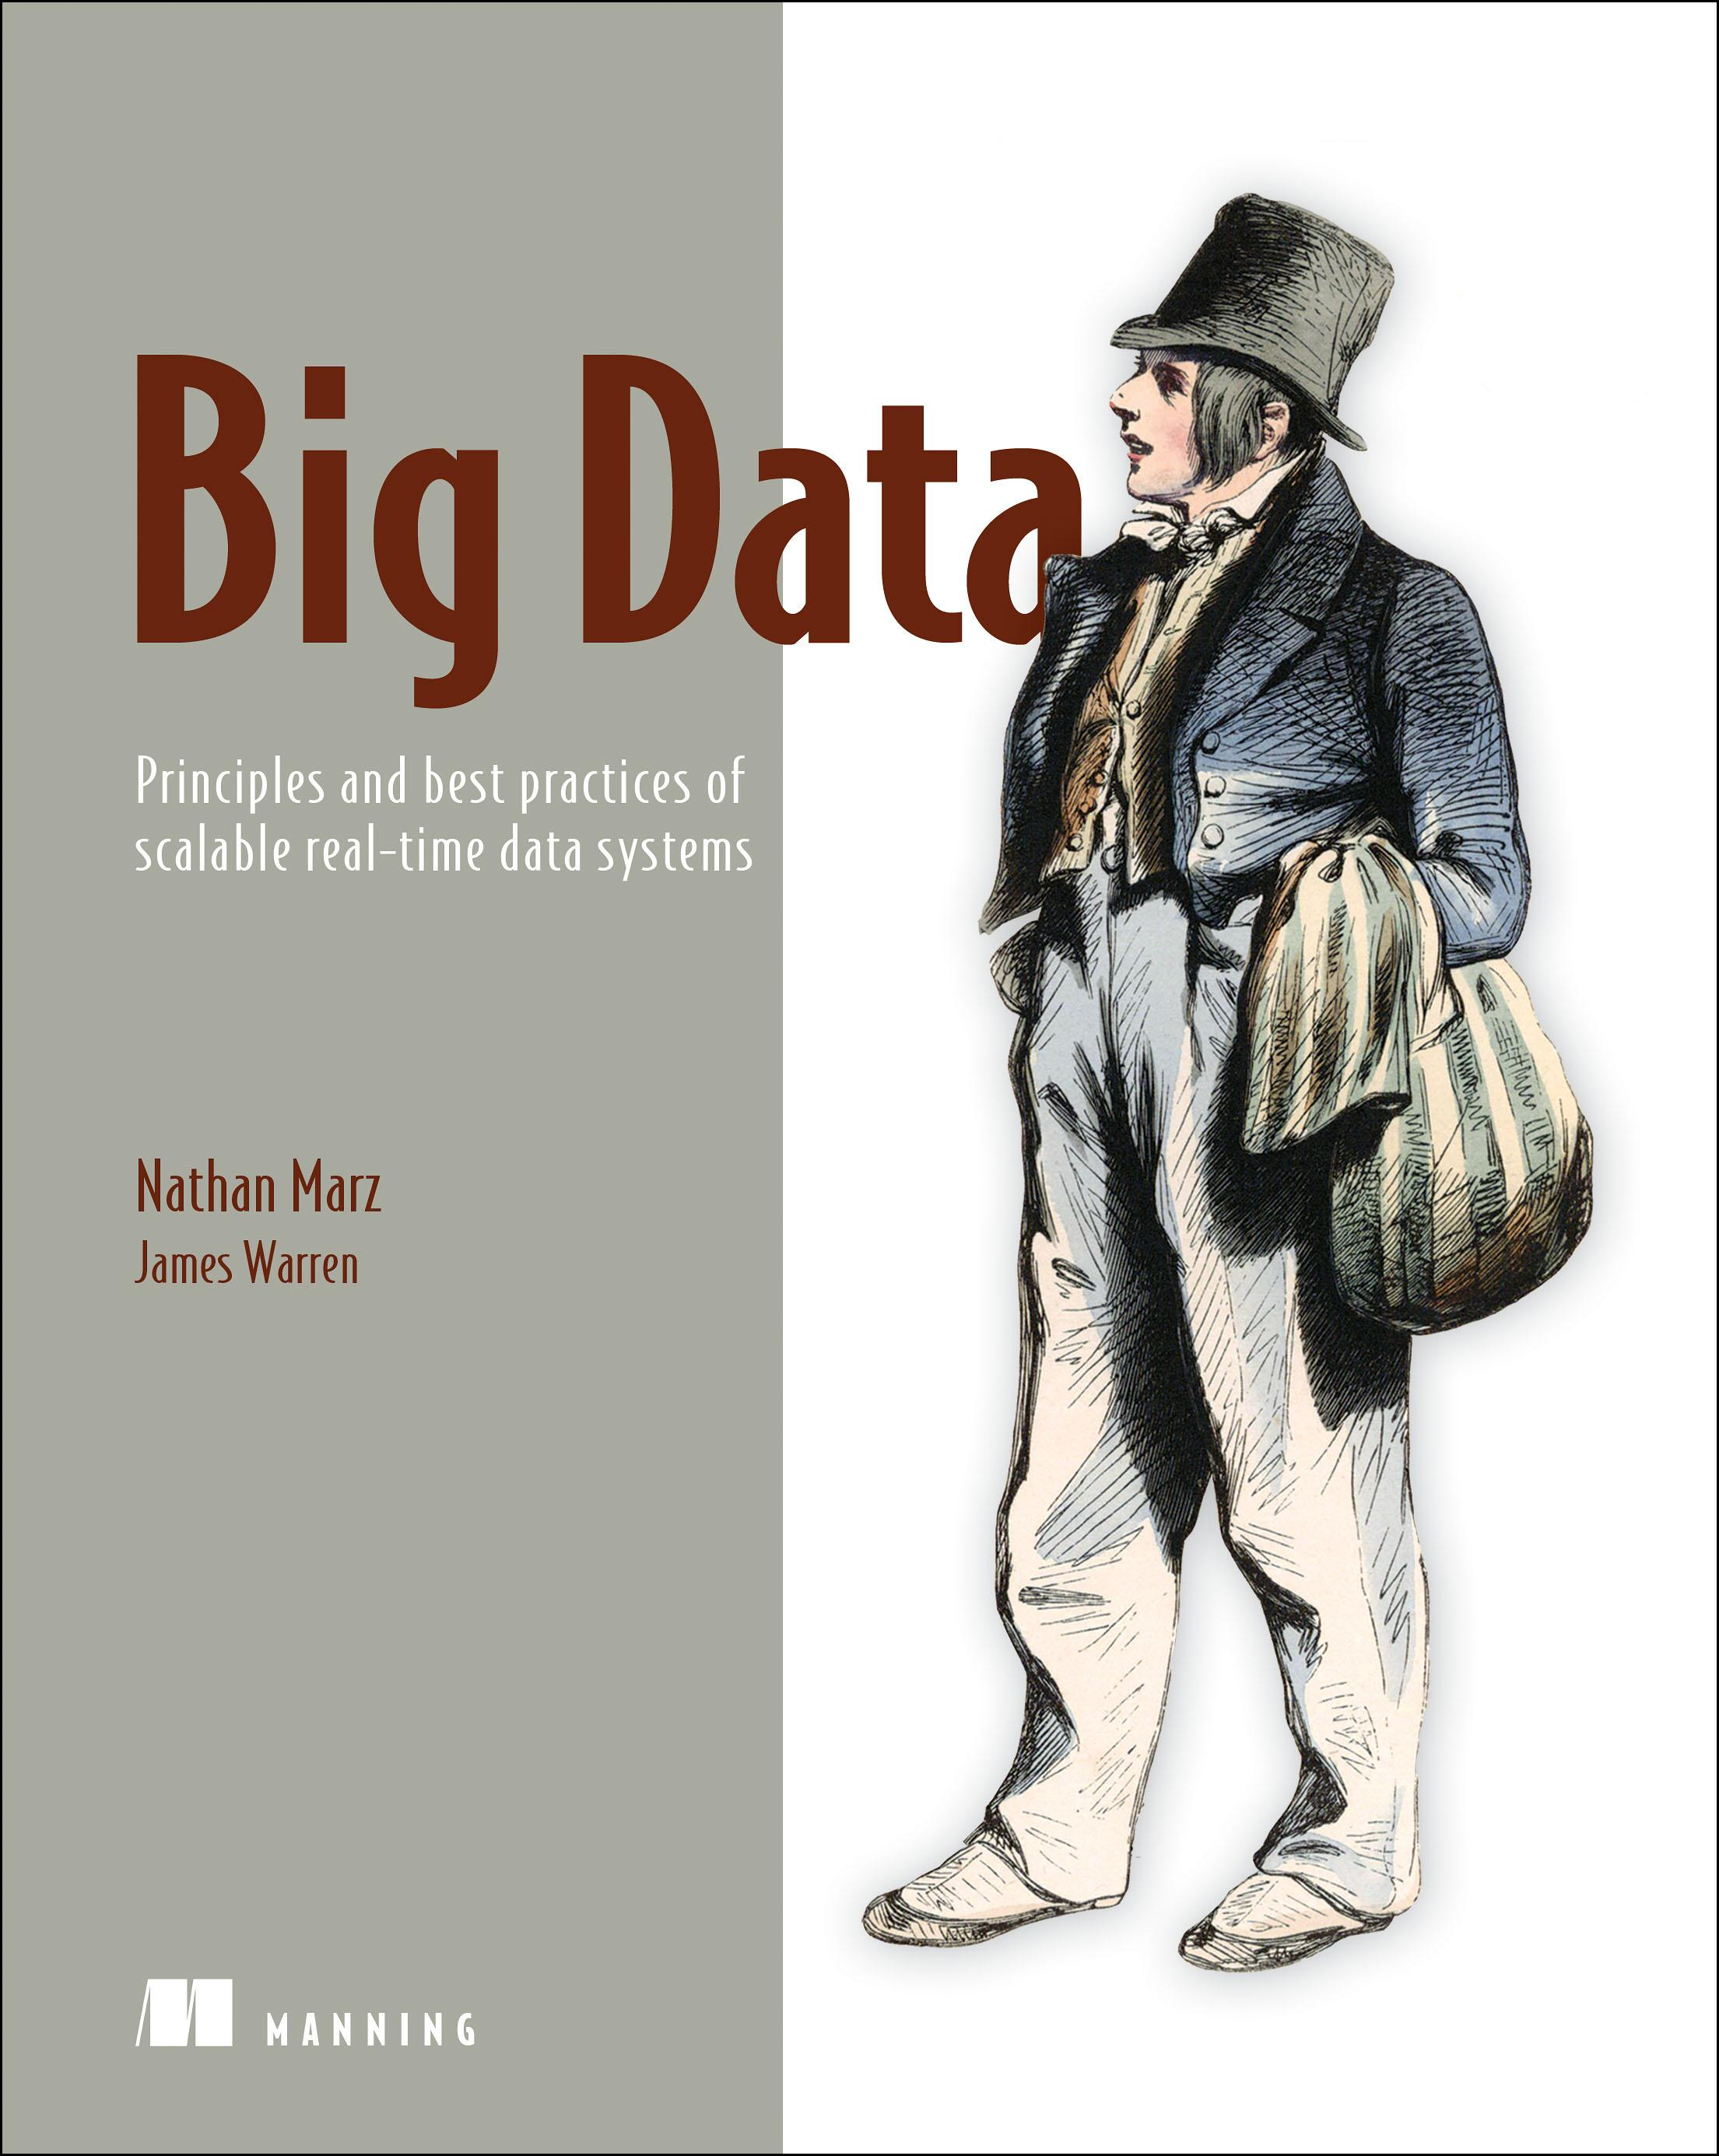 Amazon.com: Big Data: Principles and best practices of ...